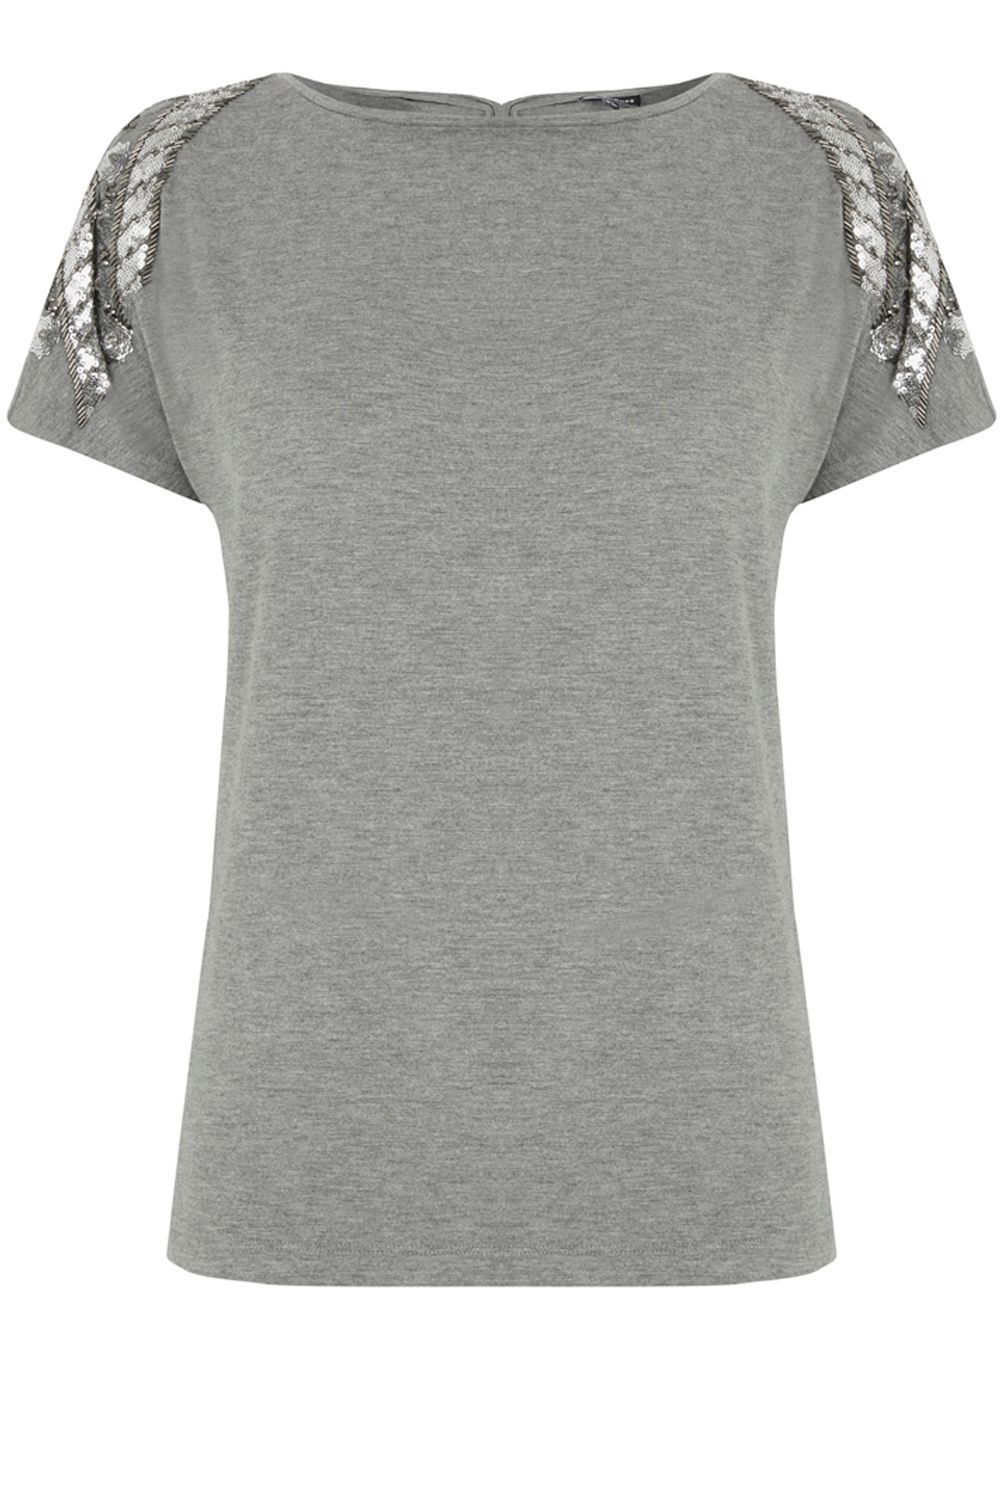 Floral Chevron Embellished Tee, Light Grey - neckline: slash/boat neckline; pattern: plain; style: t-shirt; predominant colour: charcoal; occasions: casual, creative work; length: standard; fibres: polyester/polyamide - stretch; fit: body skimming; sleeve length: short sleeve; sleeve style: standard; texture group: jersey - clingy; pattern type: fabric; season: a/w 2016; wardrobe: highlight; embellishment location: shoulder